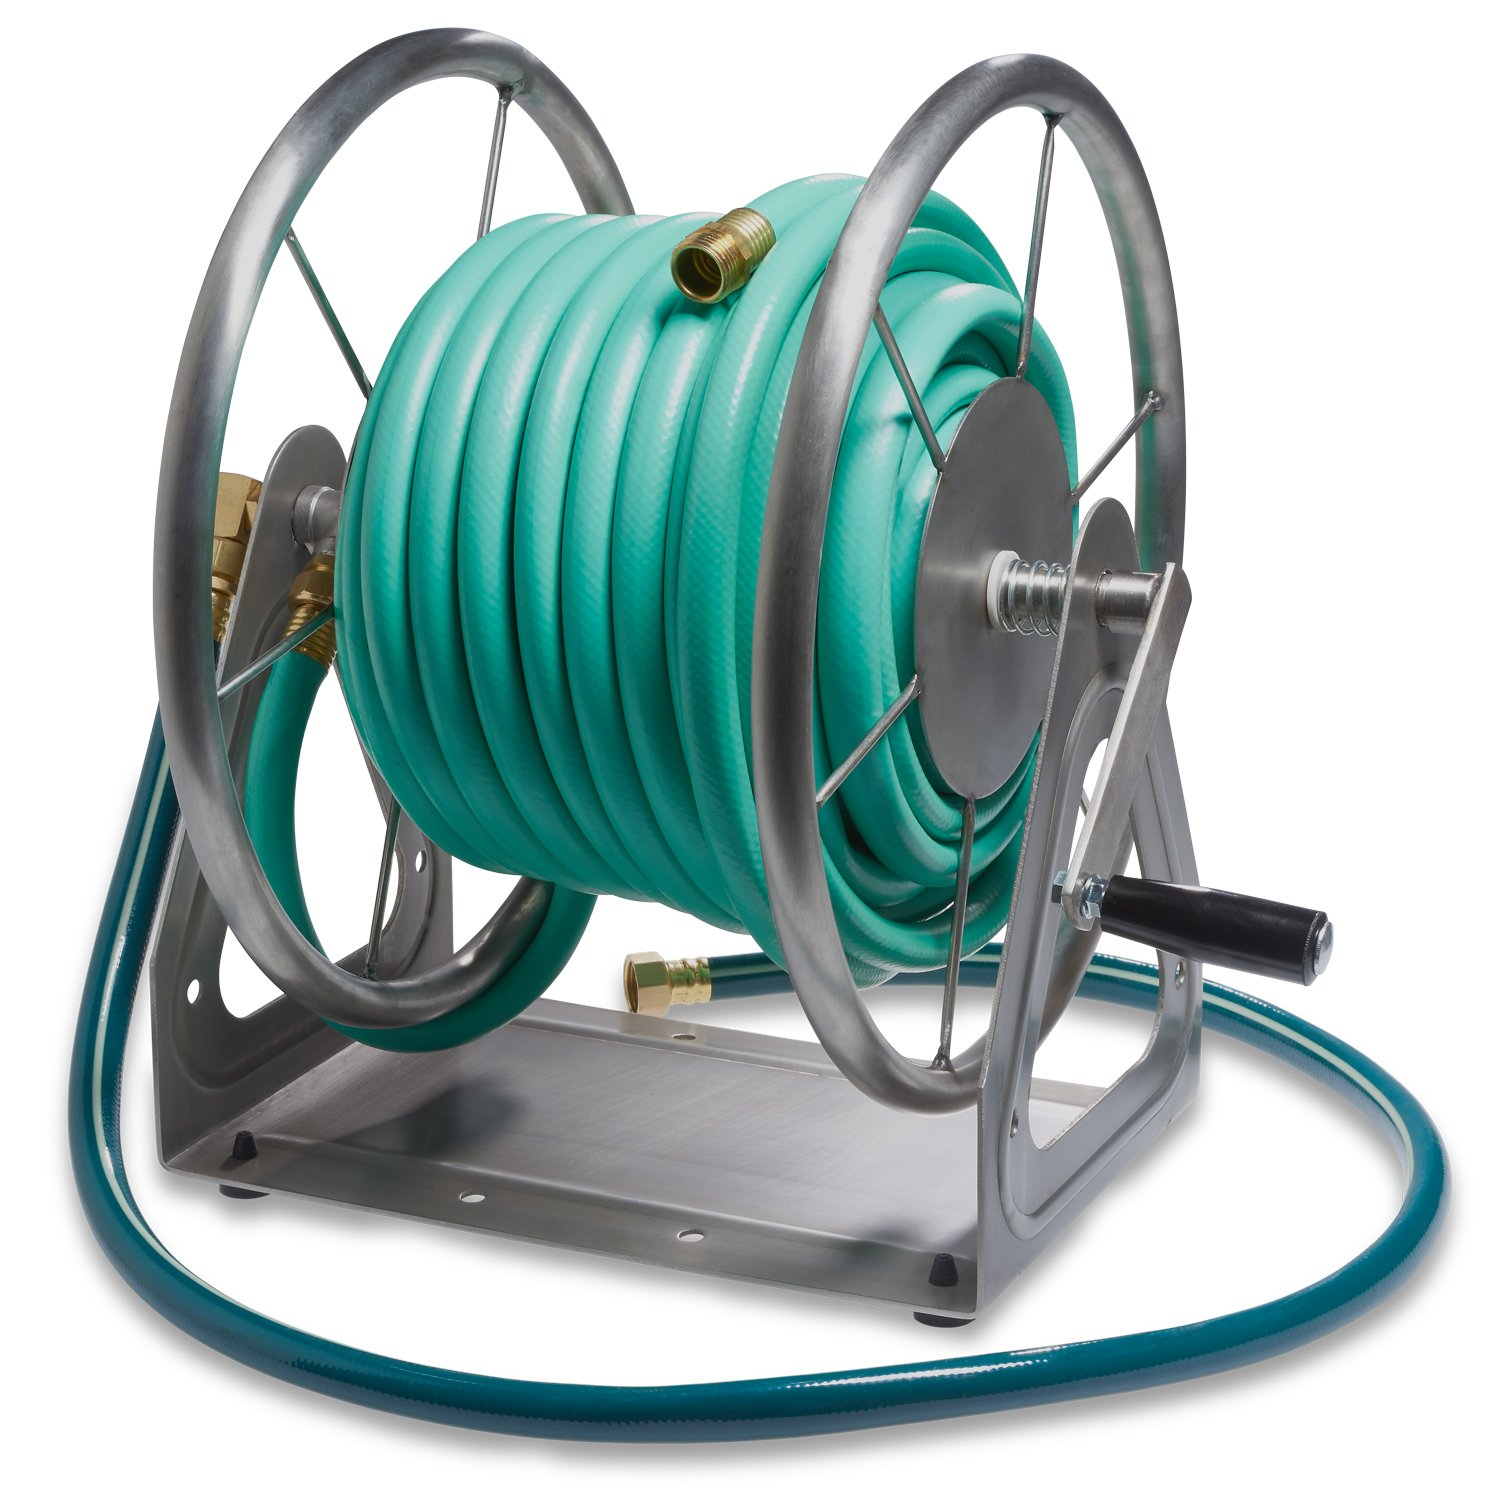 Liberty Garden Products 703-S2 Multi-Purpose Steel Wall and Floor Mount Garden Hose Reel, Holds 200-Feet of 5/8-Inch Hose - Stainless